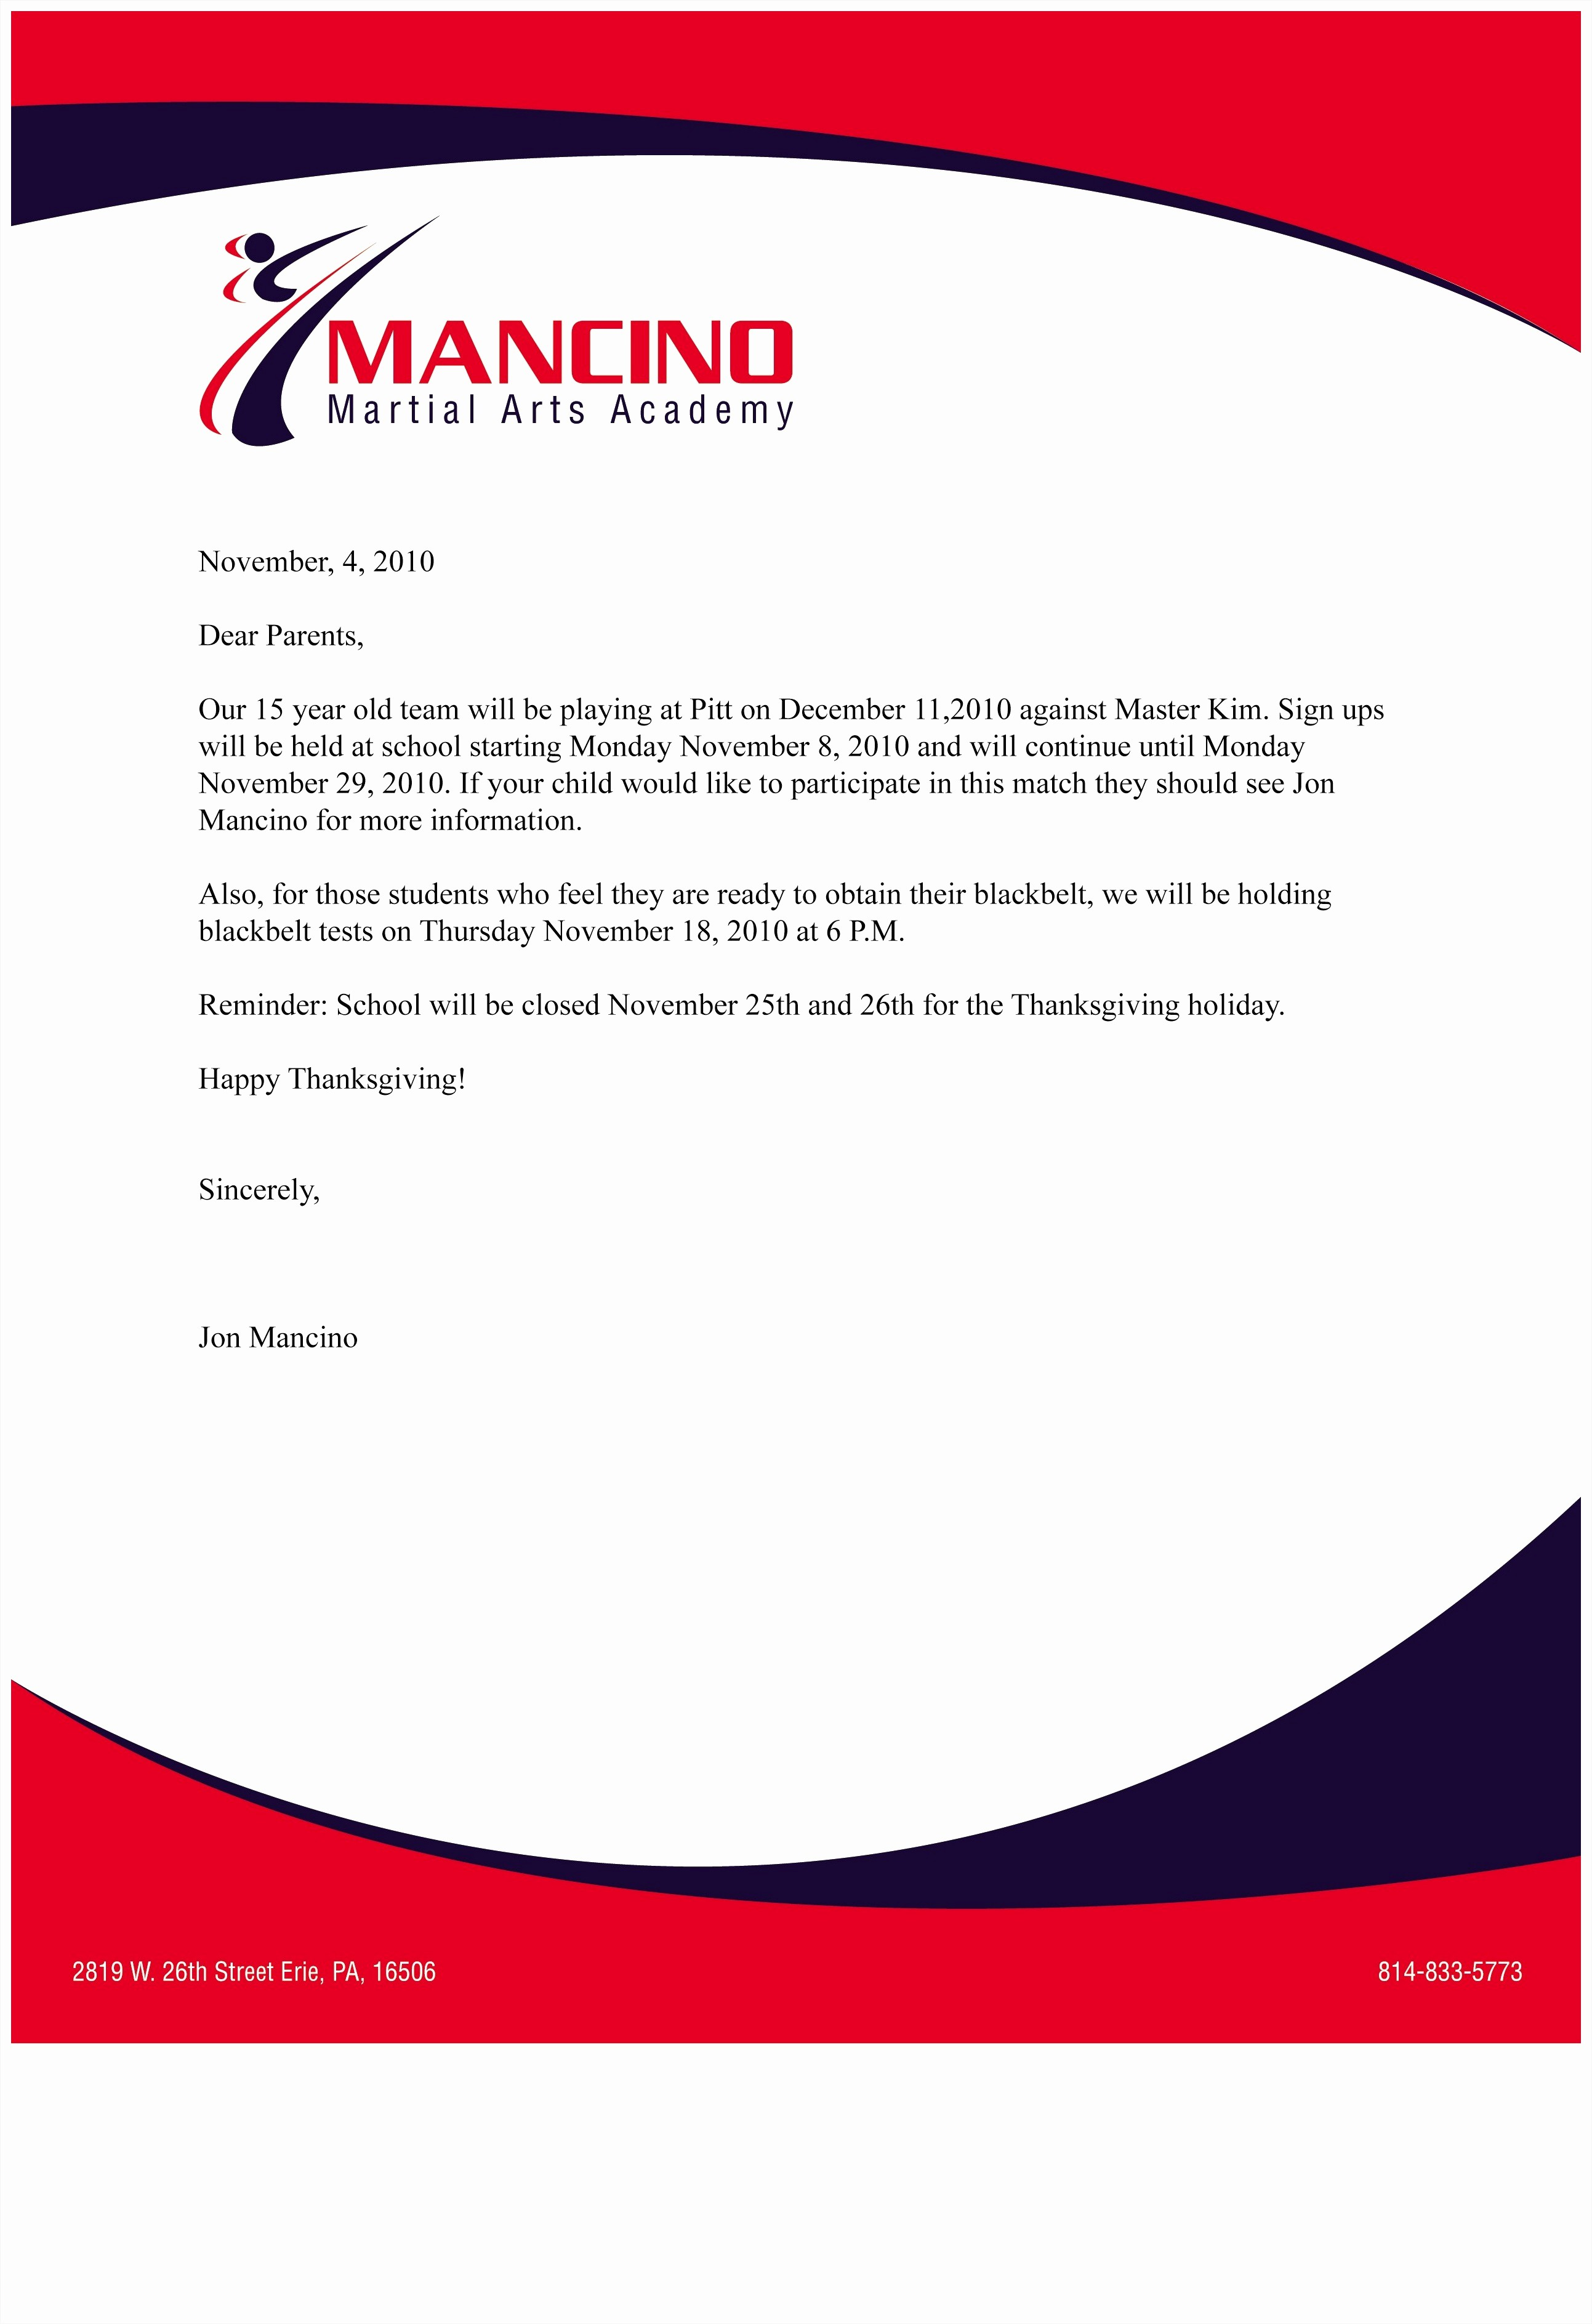 Formal Business Letter Template Word New Business Letterhead format Example Mughals